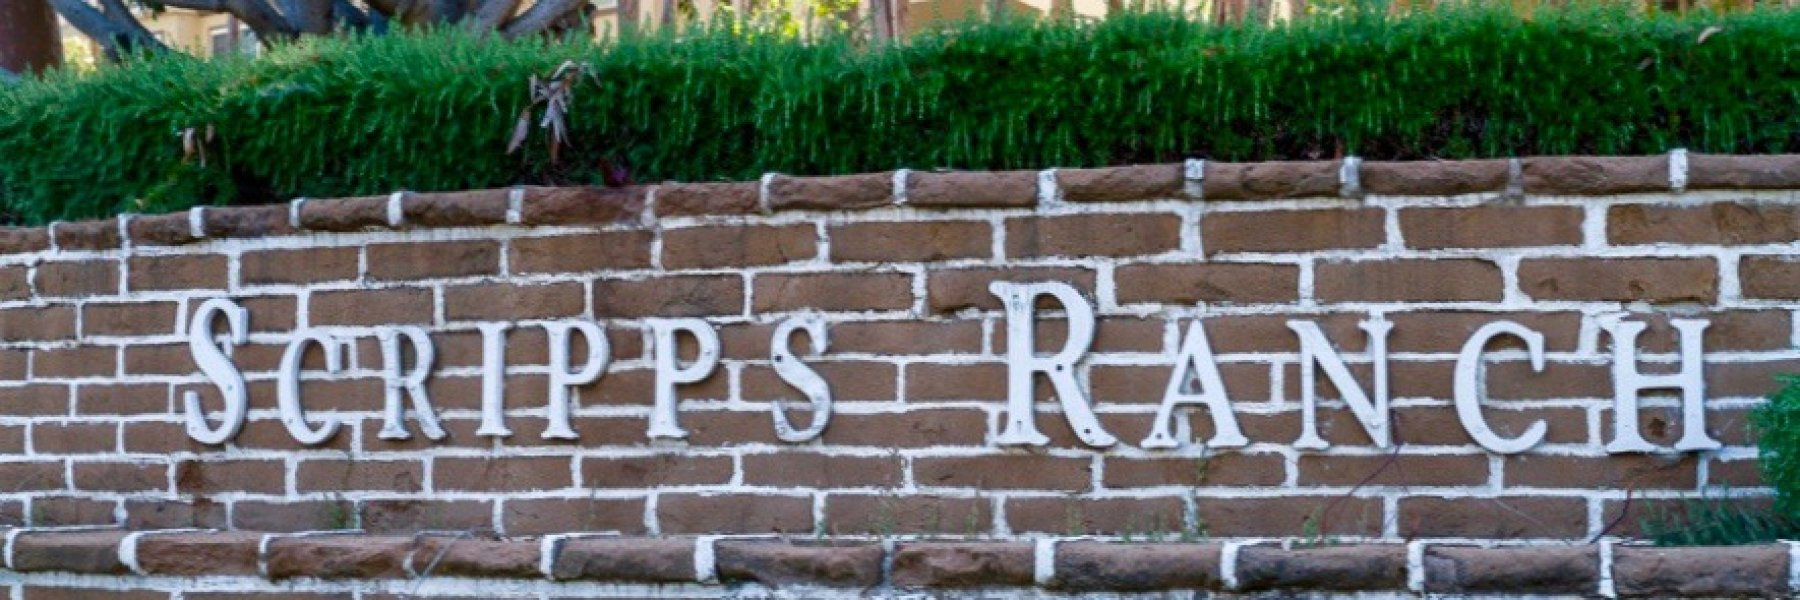 Scripps Ranch is a community of homes in San Diego California